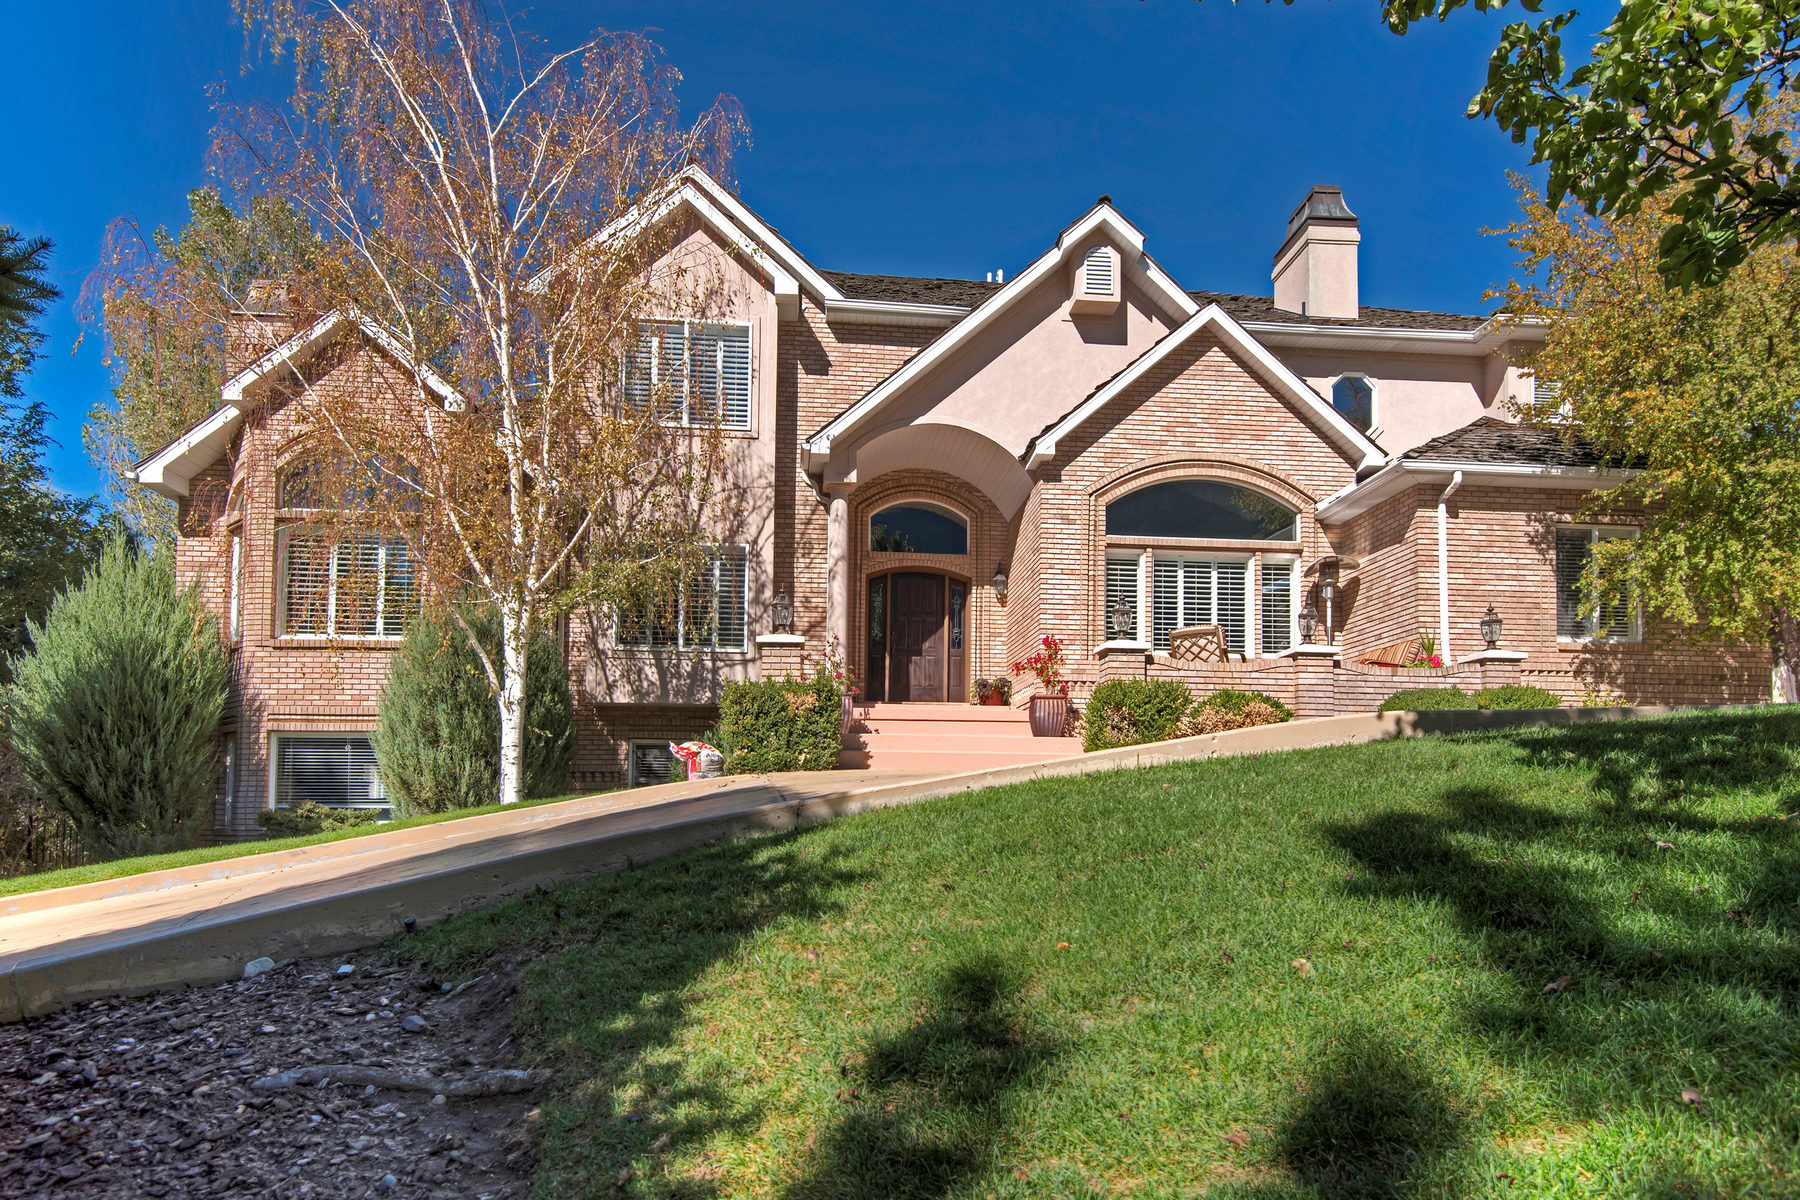 Villa per Vendita alle ore Incredible Pepperwood Estate 17 E Windsong Ln Sandy, Utah, 84092 Stati Uniti